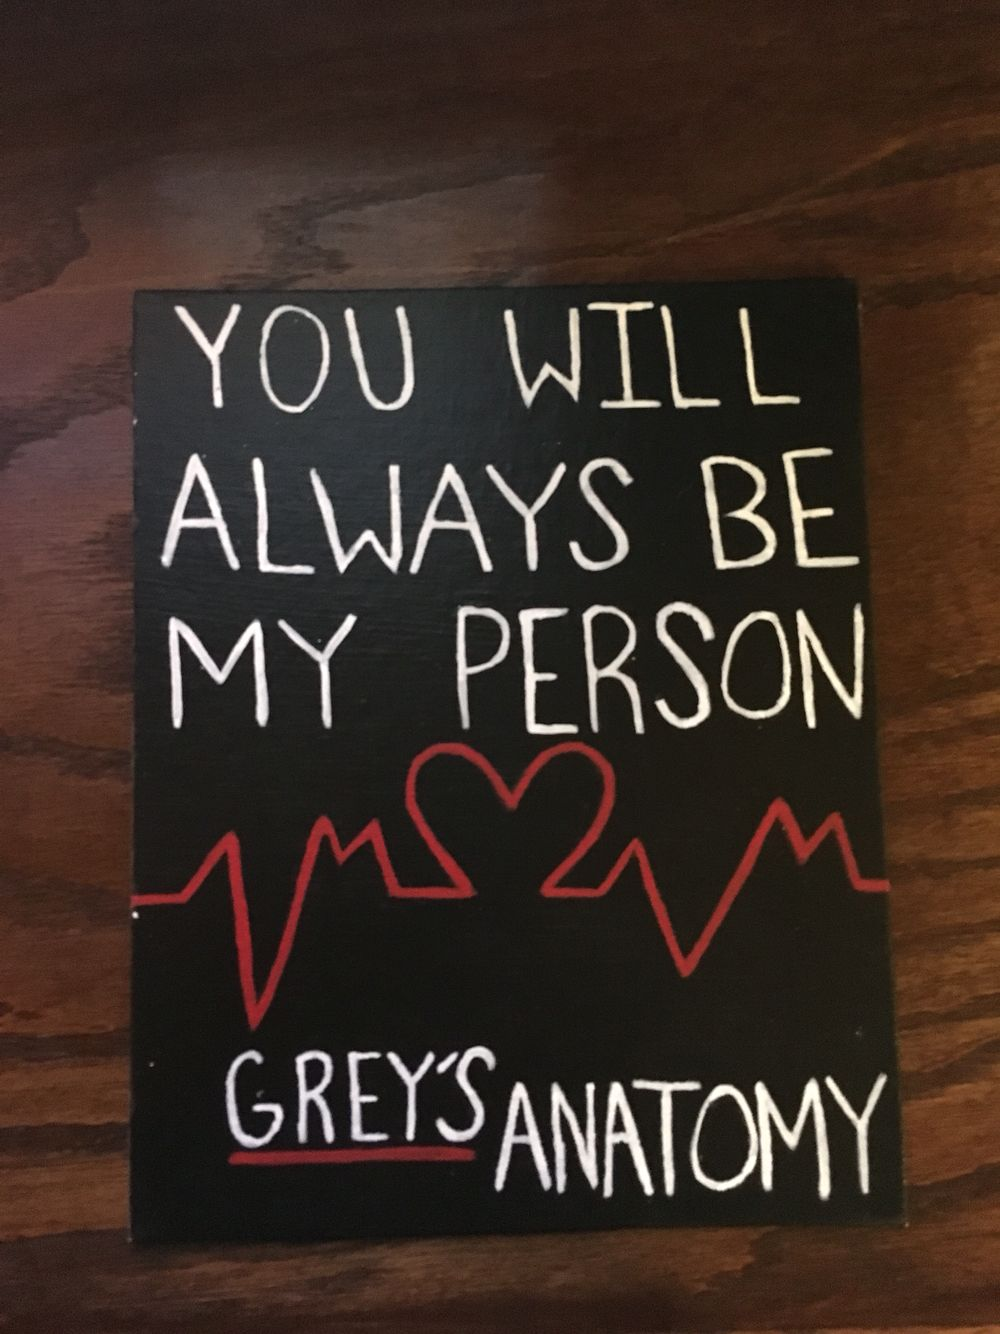 Greys anatomy diy gift | Diy projects | Pinterest | Grays anatomy ...